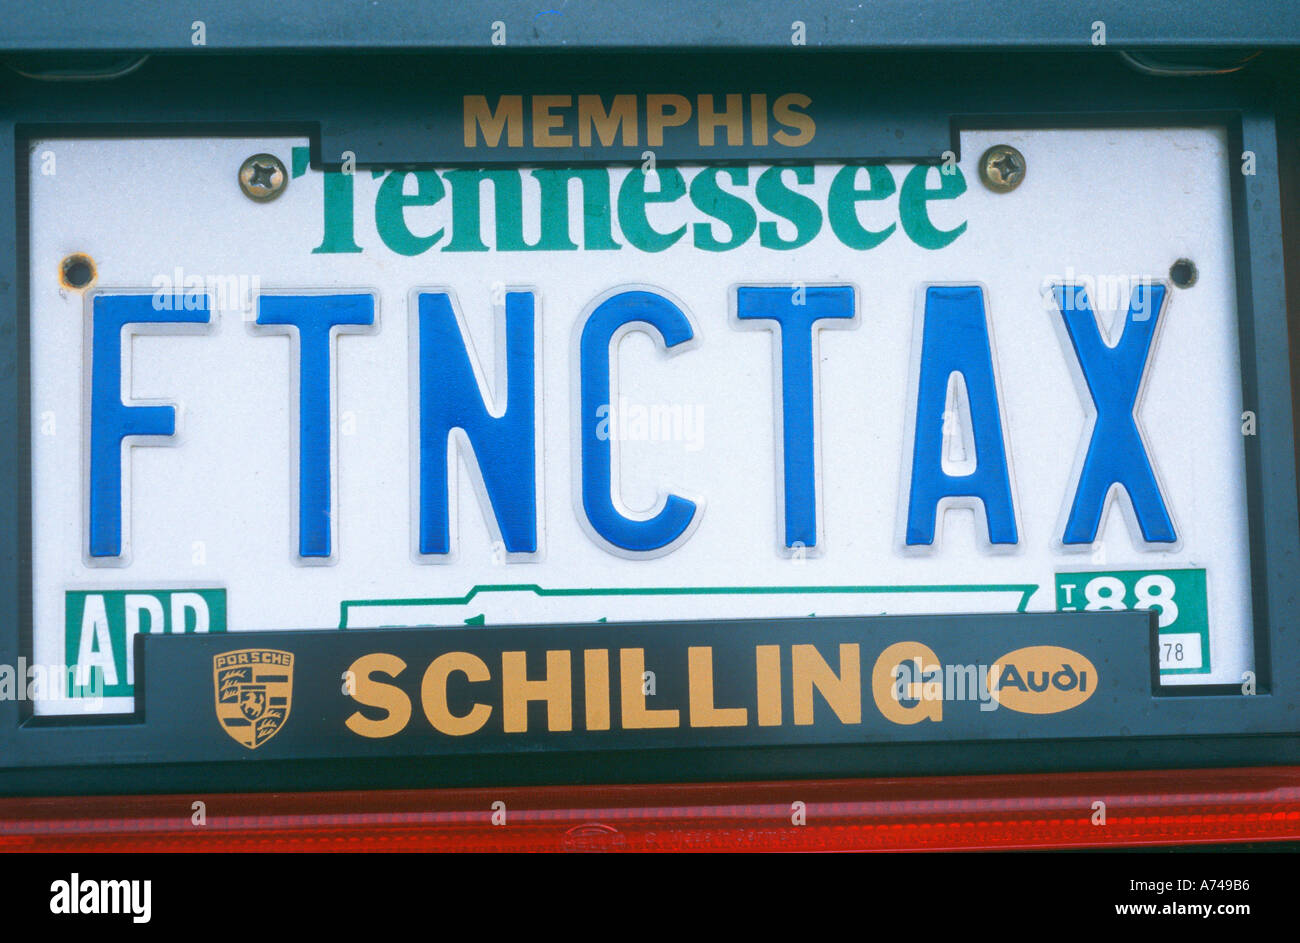 Tennessee State License Plate Stock Photos & Tennessee State License ...